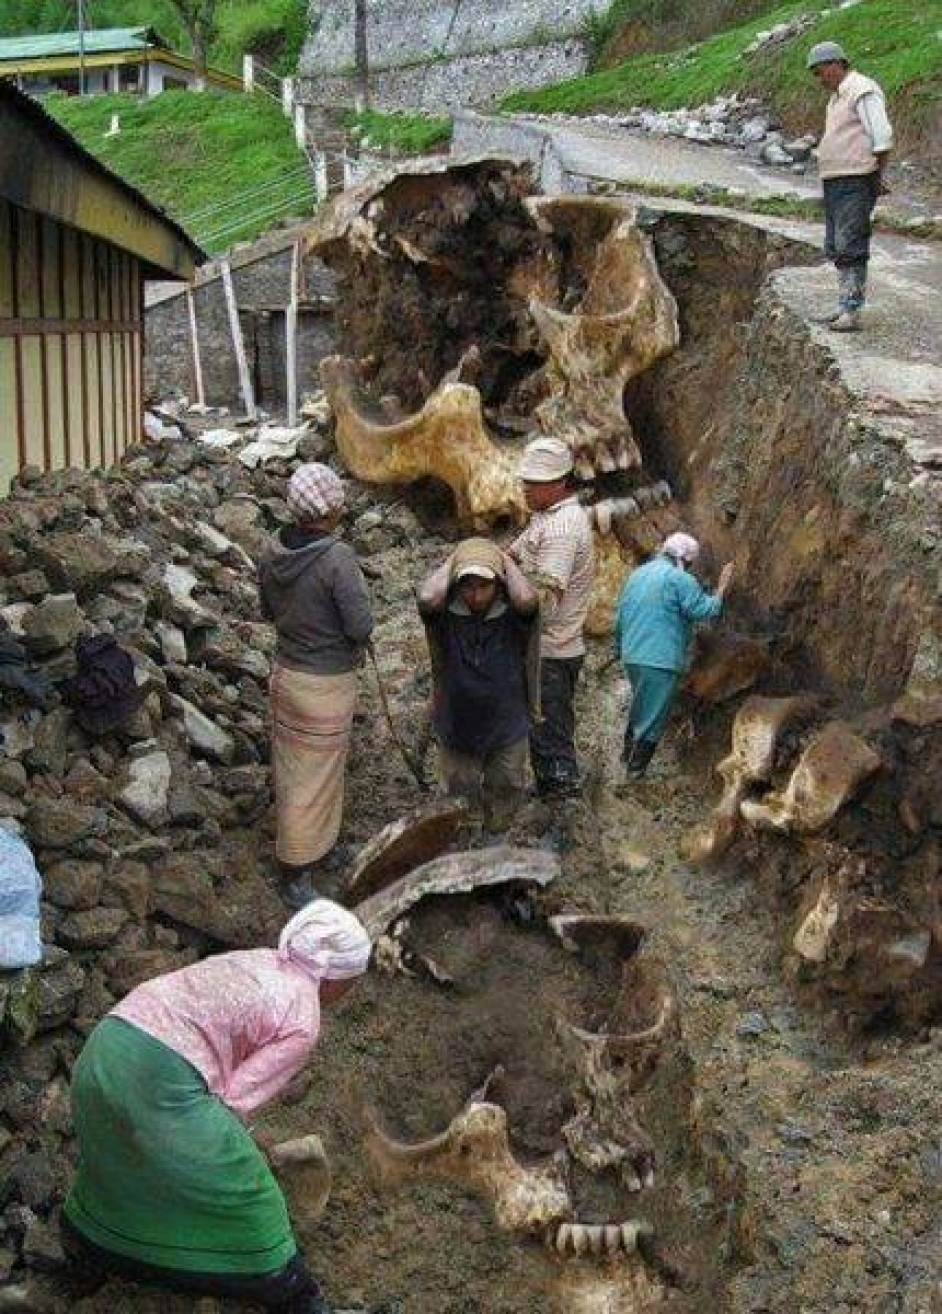 Villagers digging up Giant Skeletons In Equador